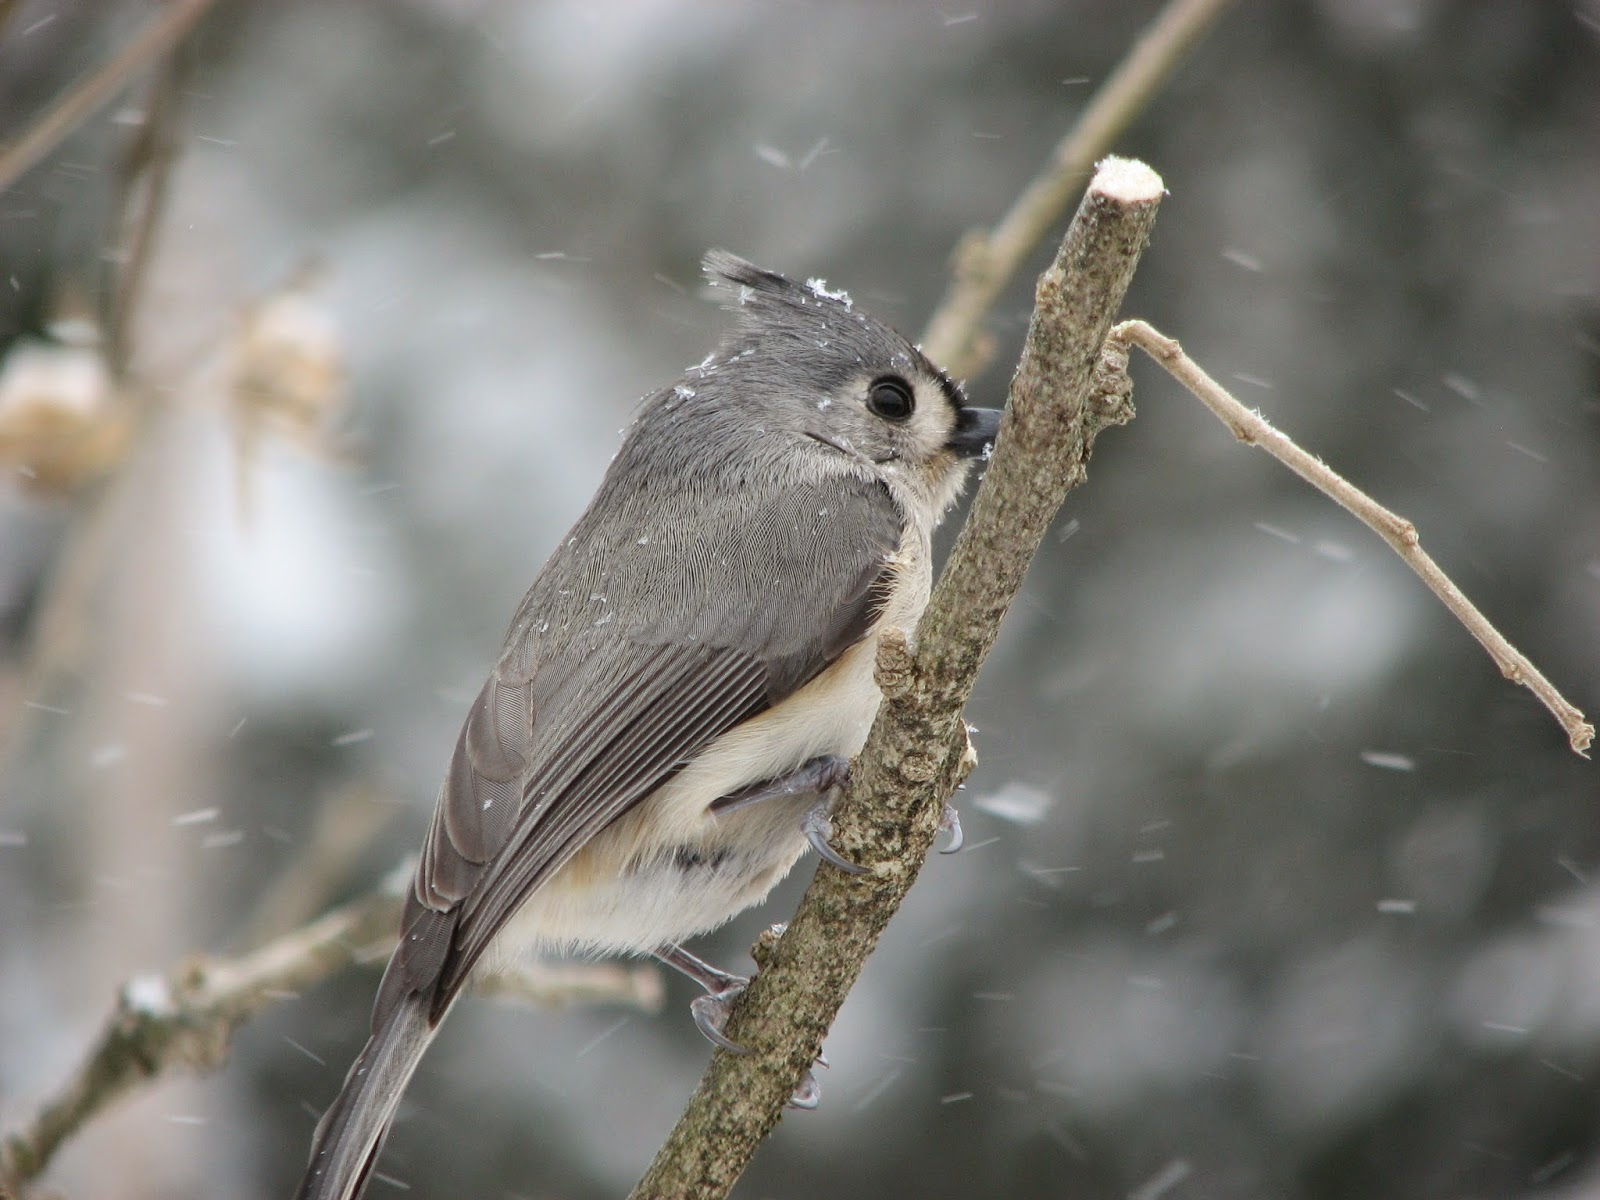 south burlington birds tufted titmouse photos south burlington